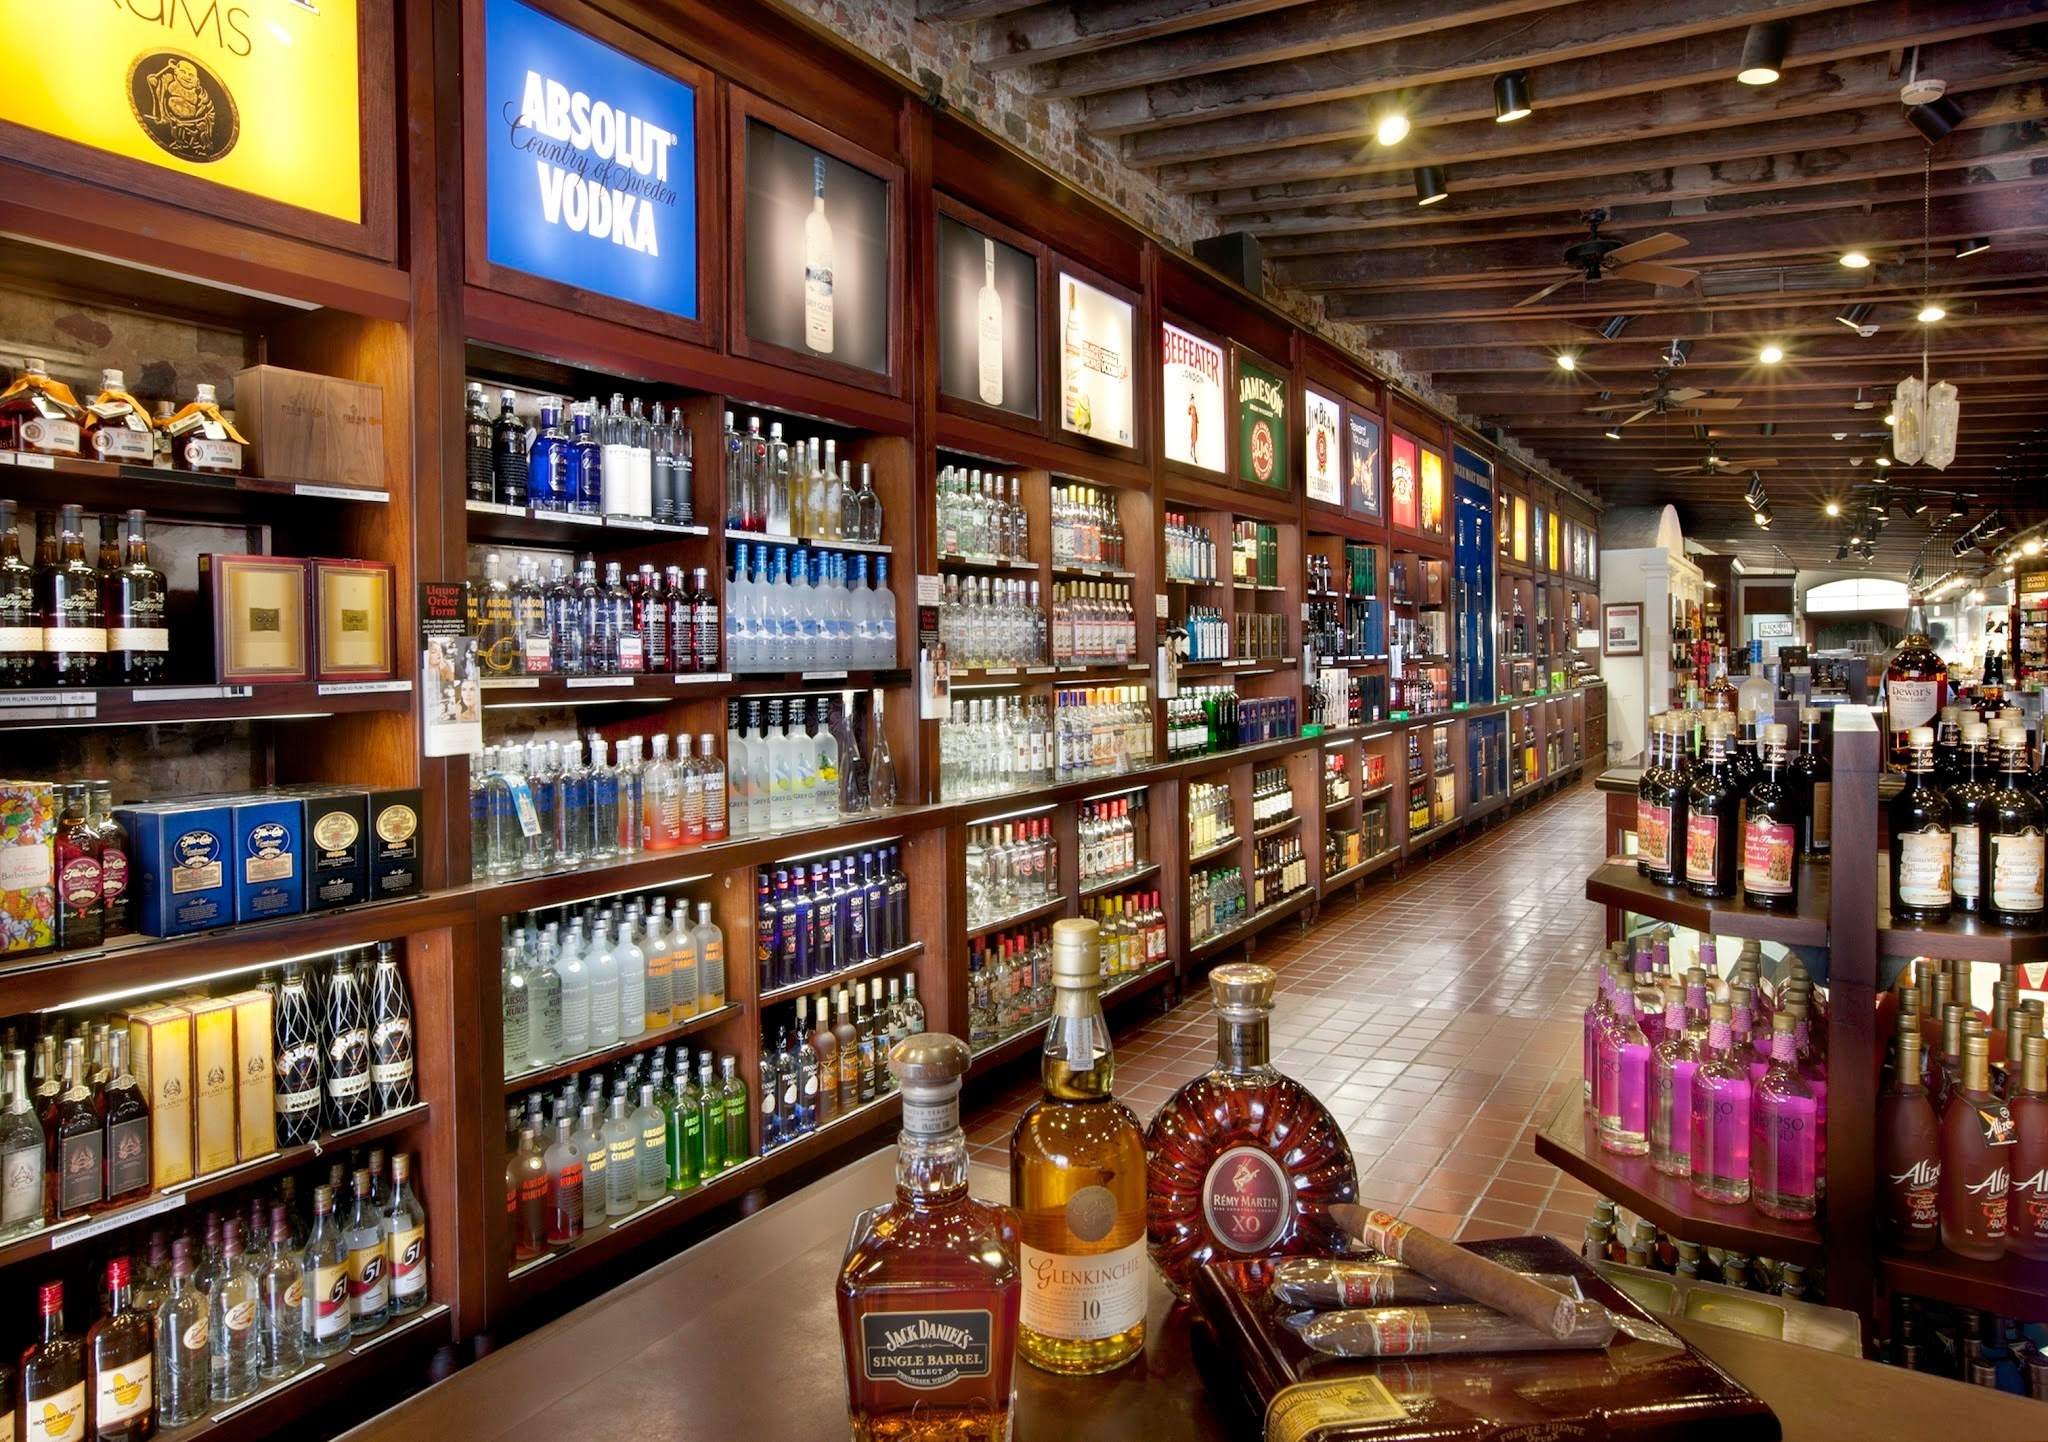 Spirits & Tobacco - Luryx stocks almost every national and international liquor brand, as well as a wide assortment of unique specialty liqueurs and Caribbean rums, all at unbelievable duty-free savings; and there is no sales tax! 340-998-8324